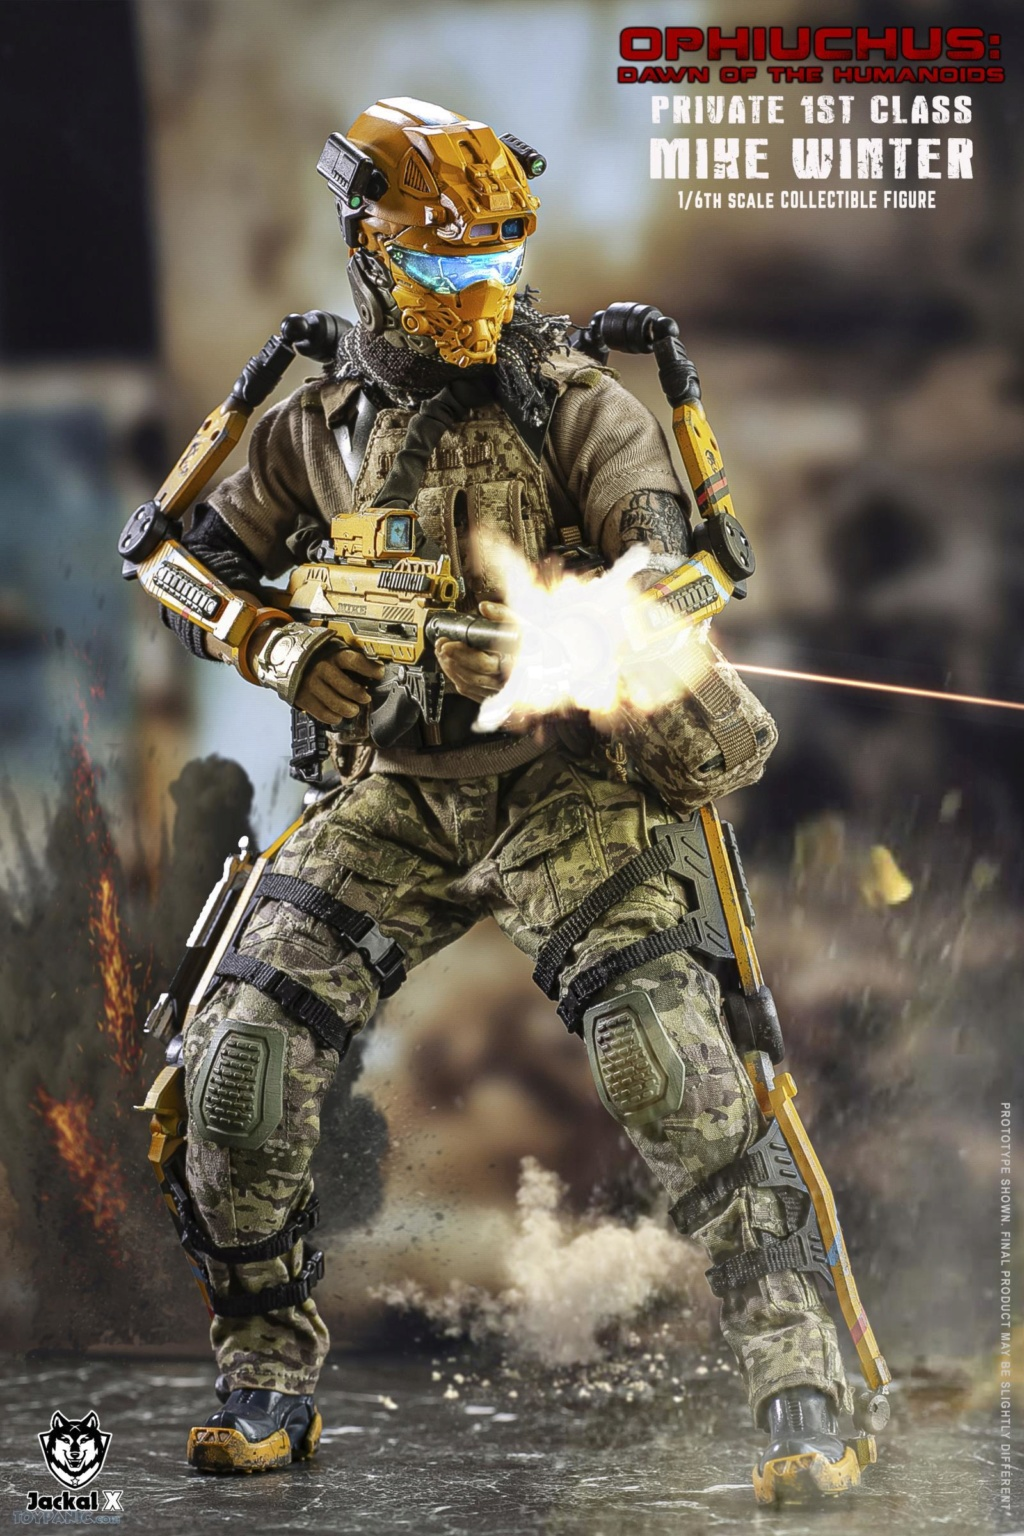 military - NEW PRODUCT: JackalX: 1/6 Ophiuchus: Dawn of Humanoid: Private 1st Class Mike Winter Collectible Figure (2 Versions) 43202015